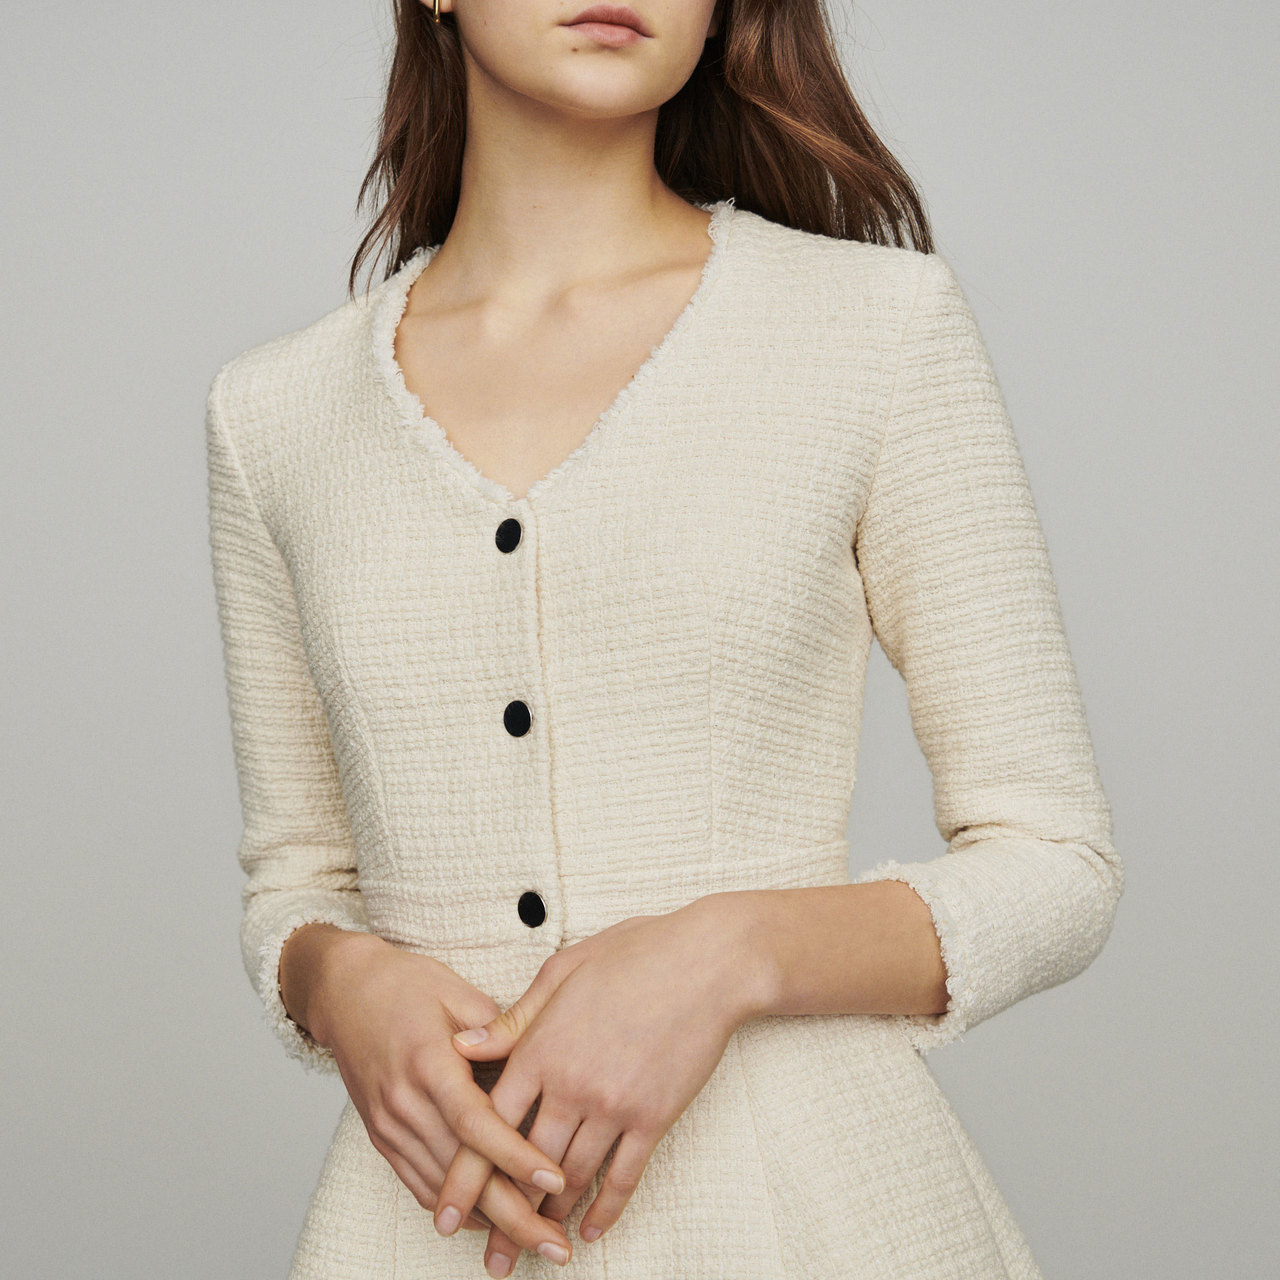 Tweed-Style Trapeze Dress - Ecru